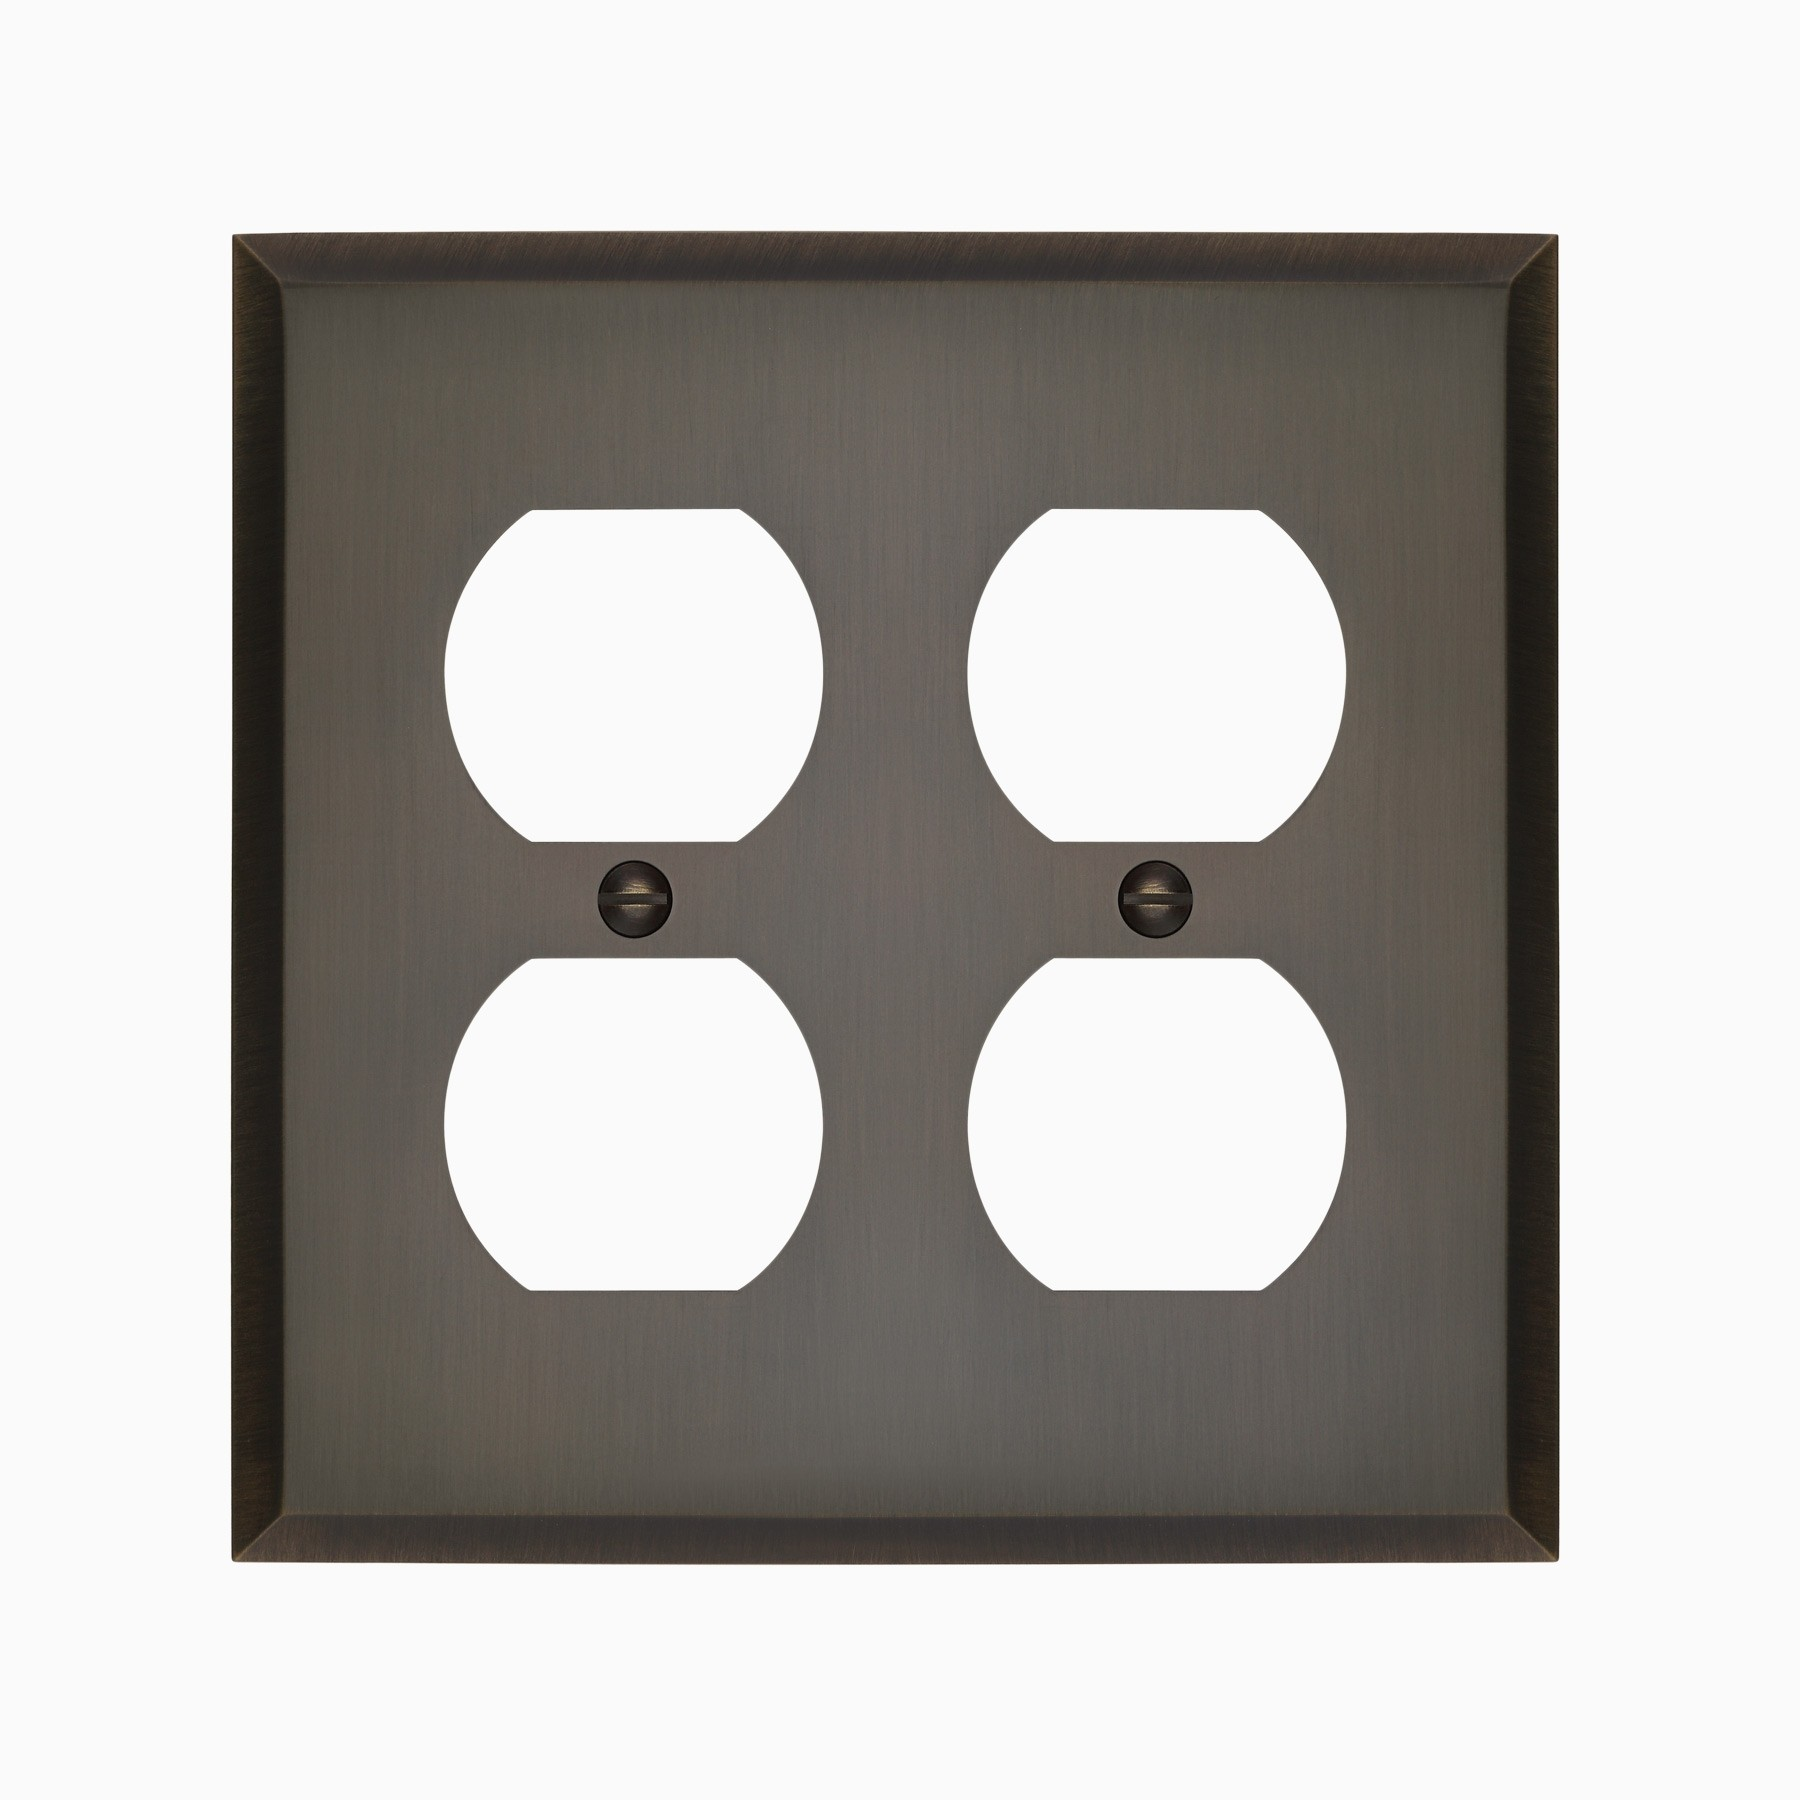 Graham Double Duplex Outlet Cover Wall Mounted Electrical Switch Plate